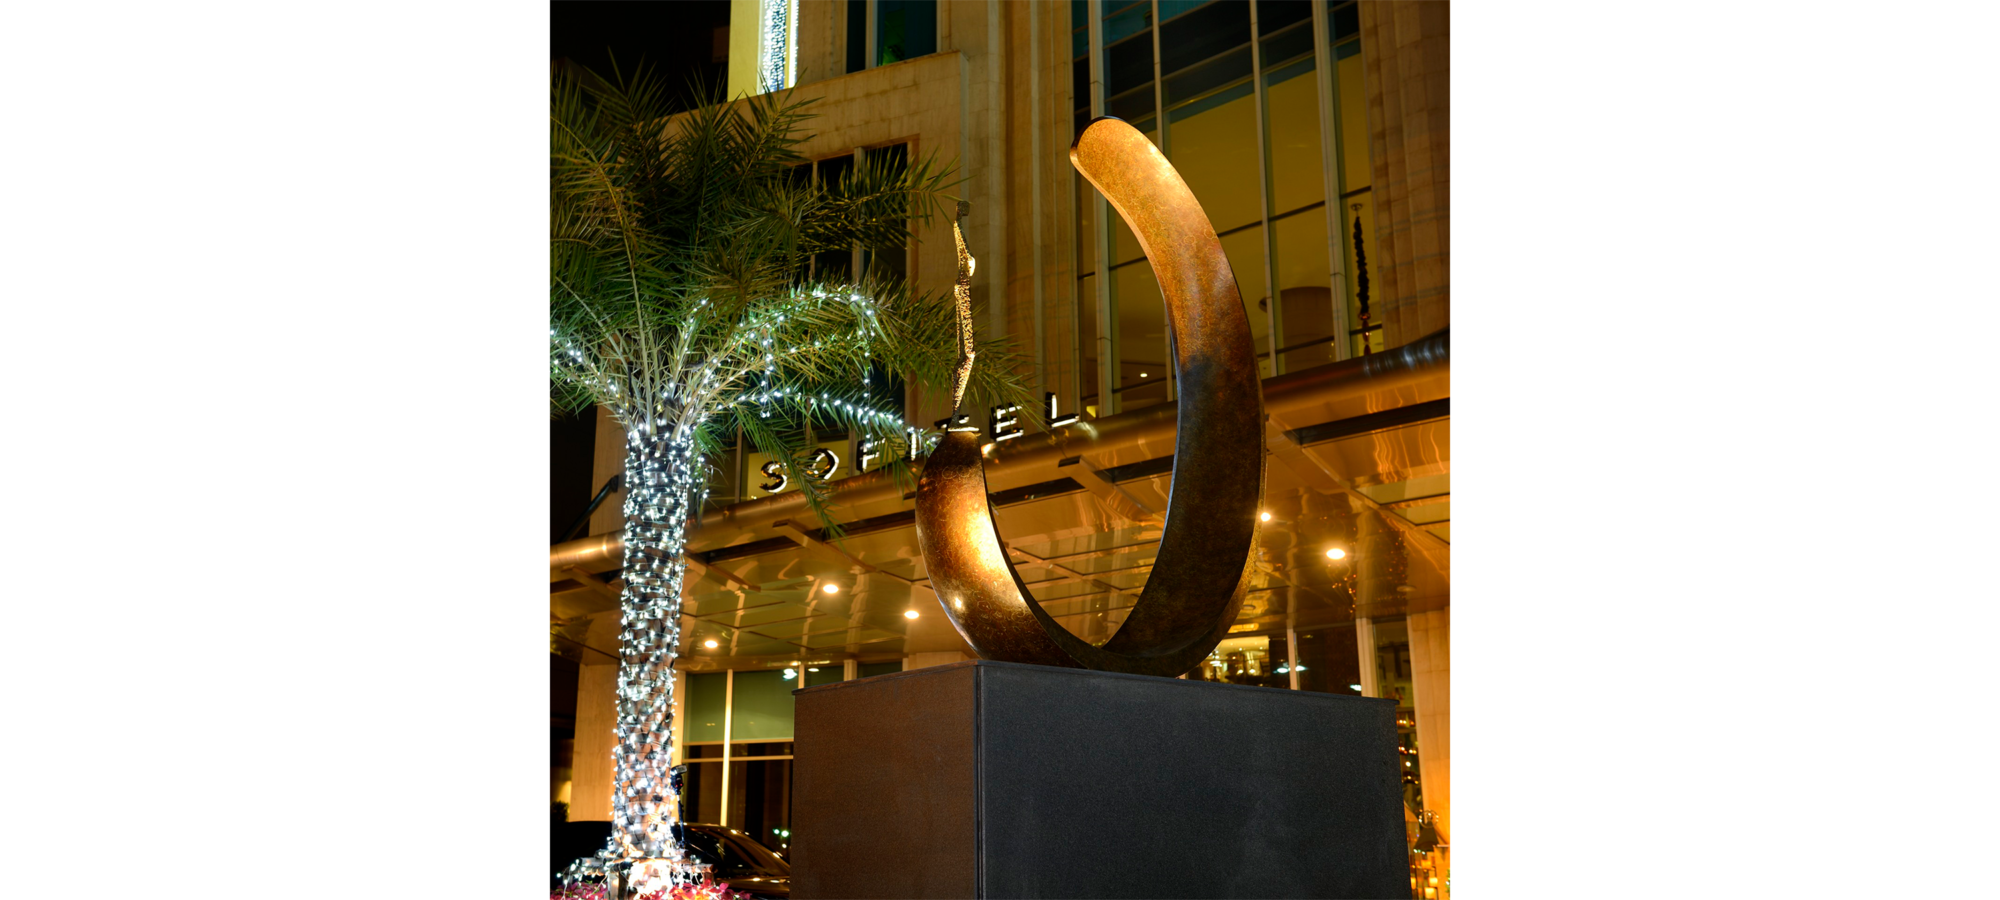 Inle balance III by French sculptor Val - Valérie Goutard - with Sculptureval at Sofitel Sukhumvit in Bangkok = Thailand